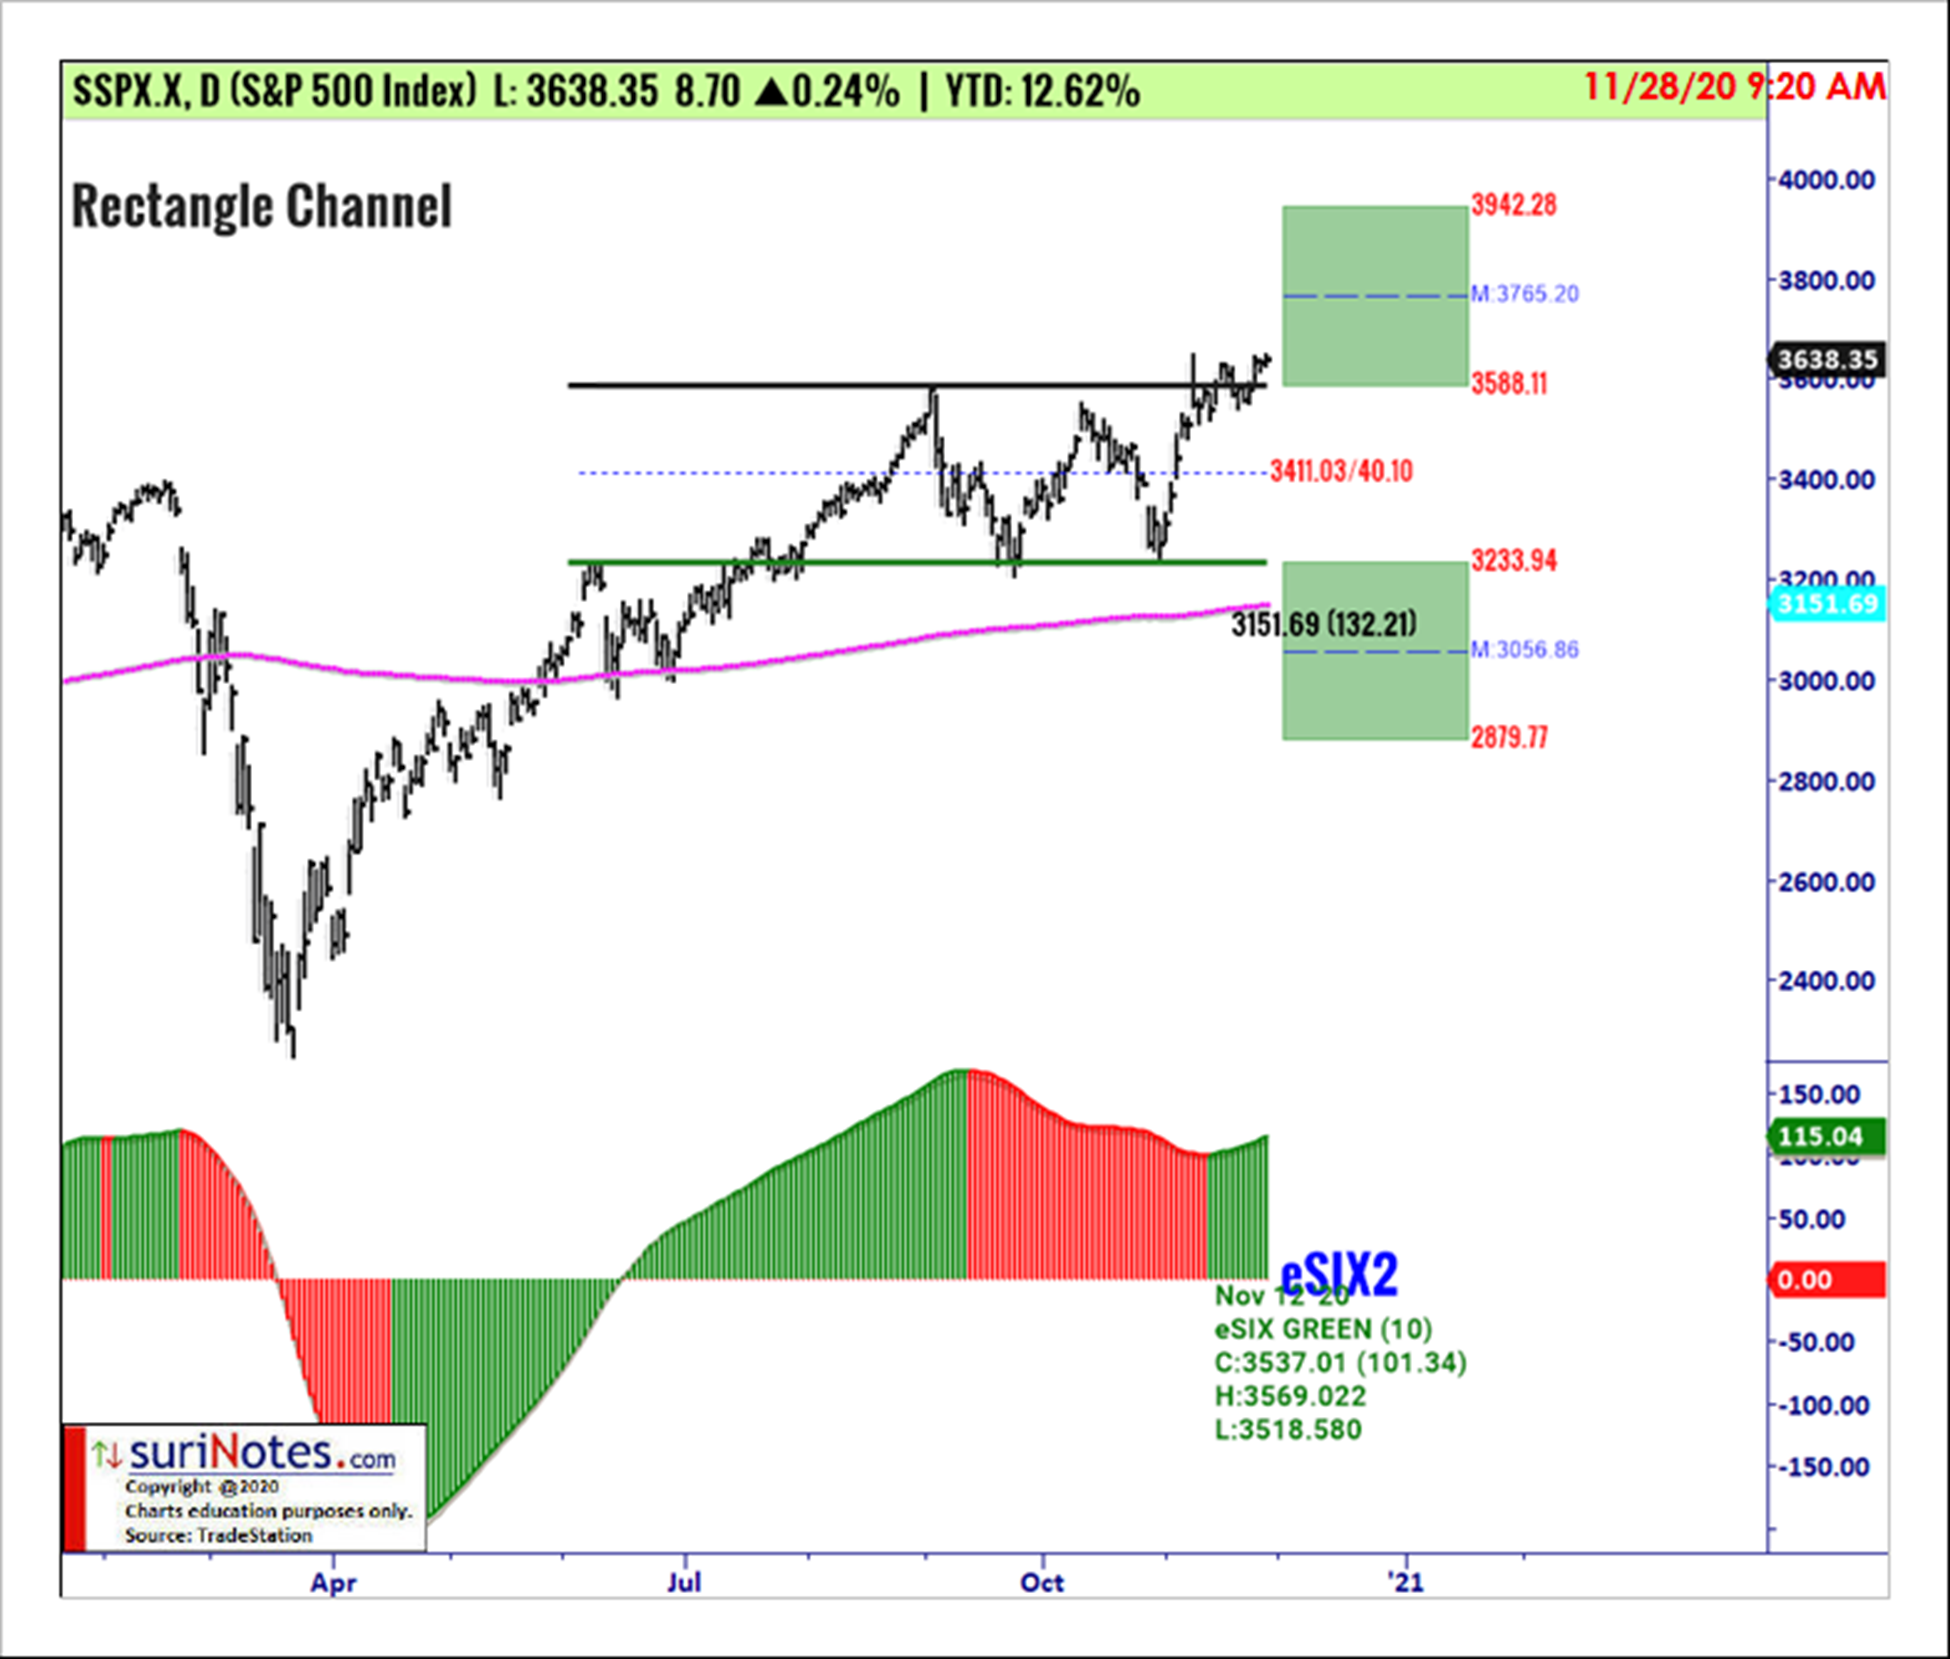 S&P 500 Index (SPX) Rectangle Channel Pattern